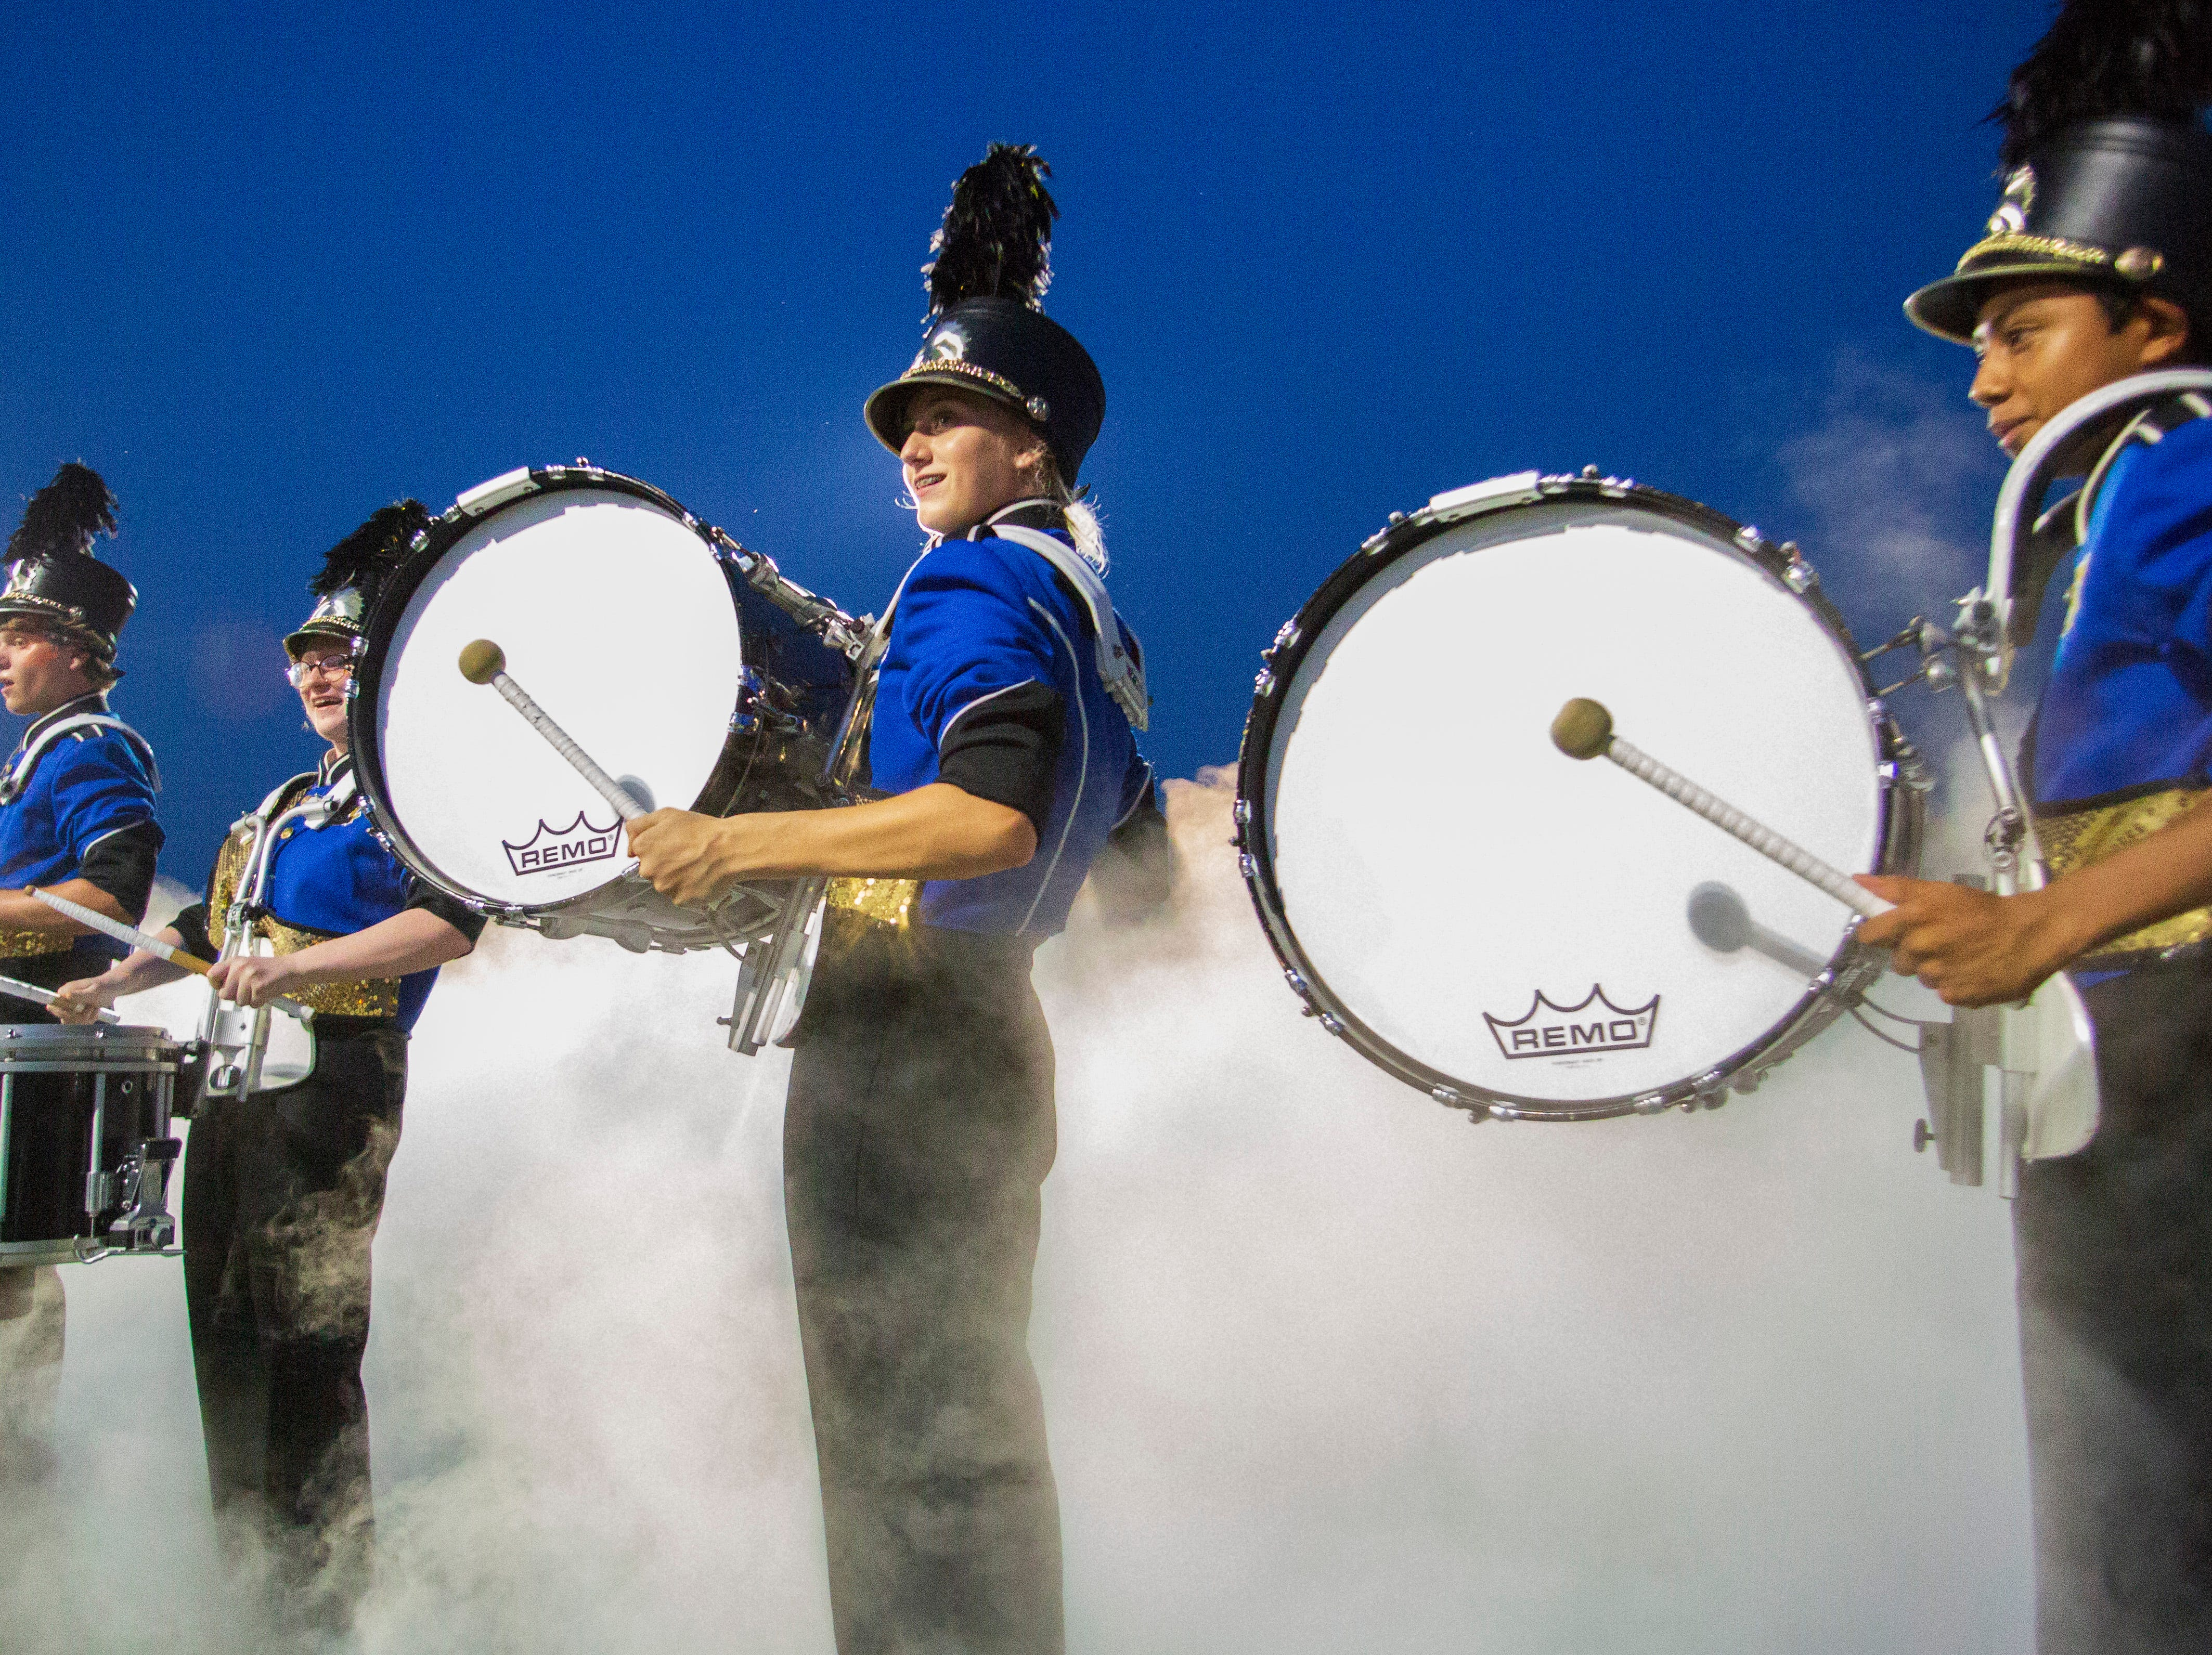 A cloud swirls around the Montgomery Catholic band as they welcome the team to the field with a song.